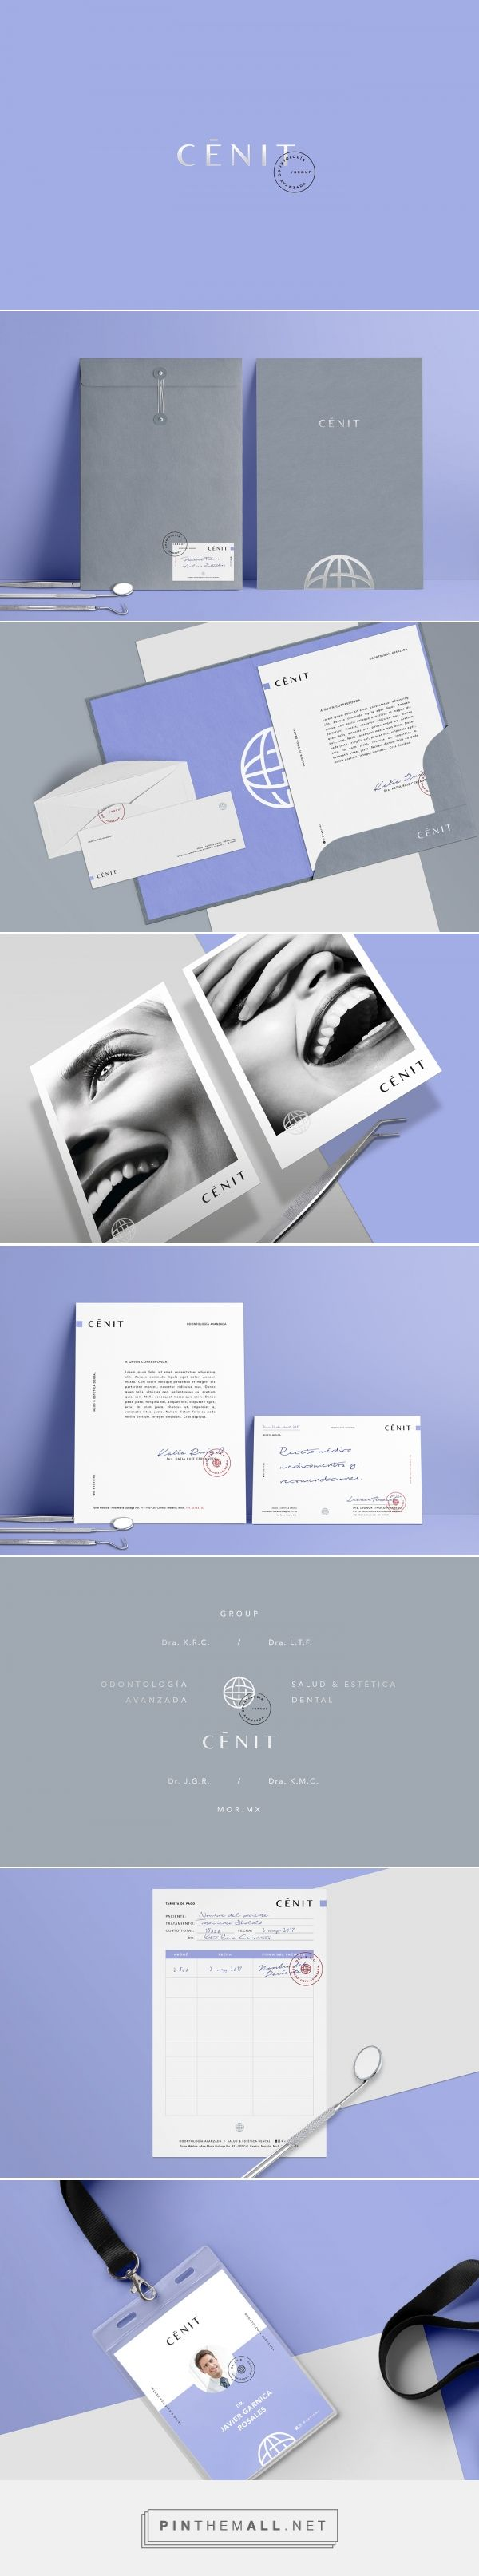 CNIT Advanced Dentistry Branding by Paradoja mx